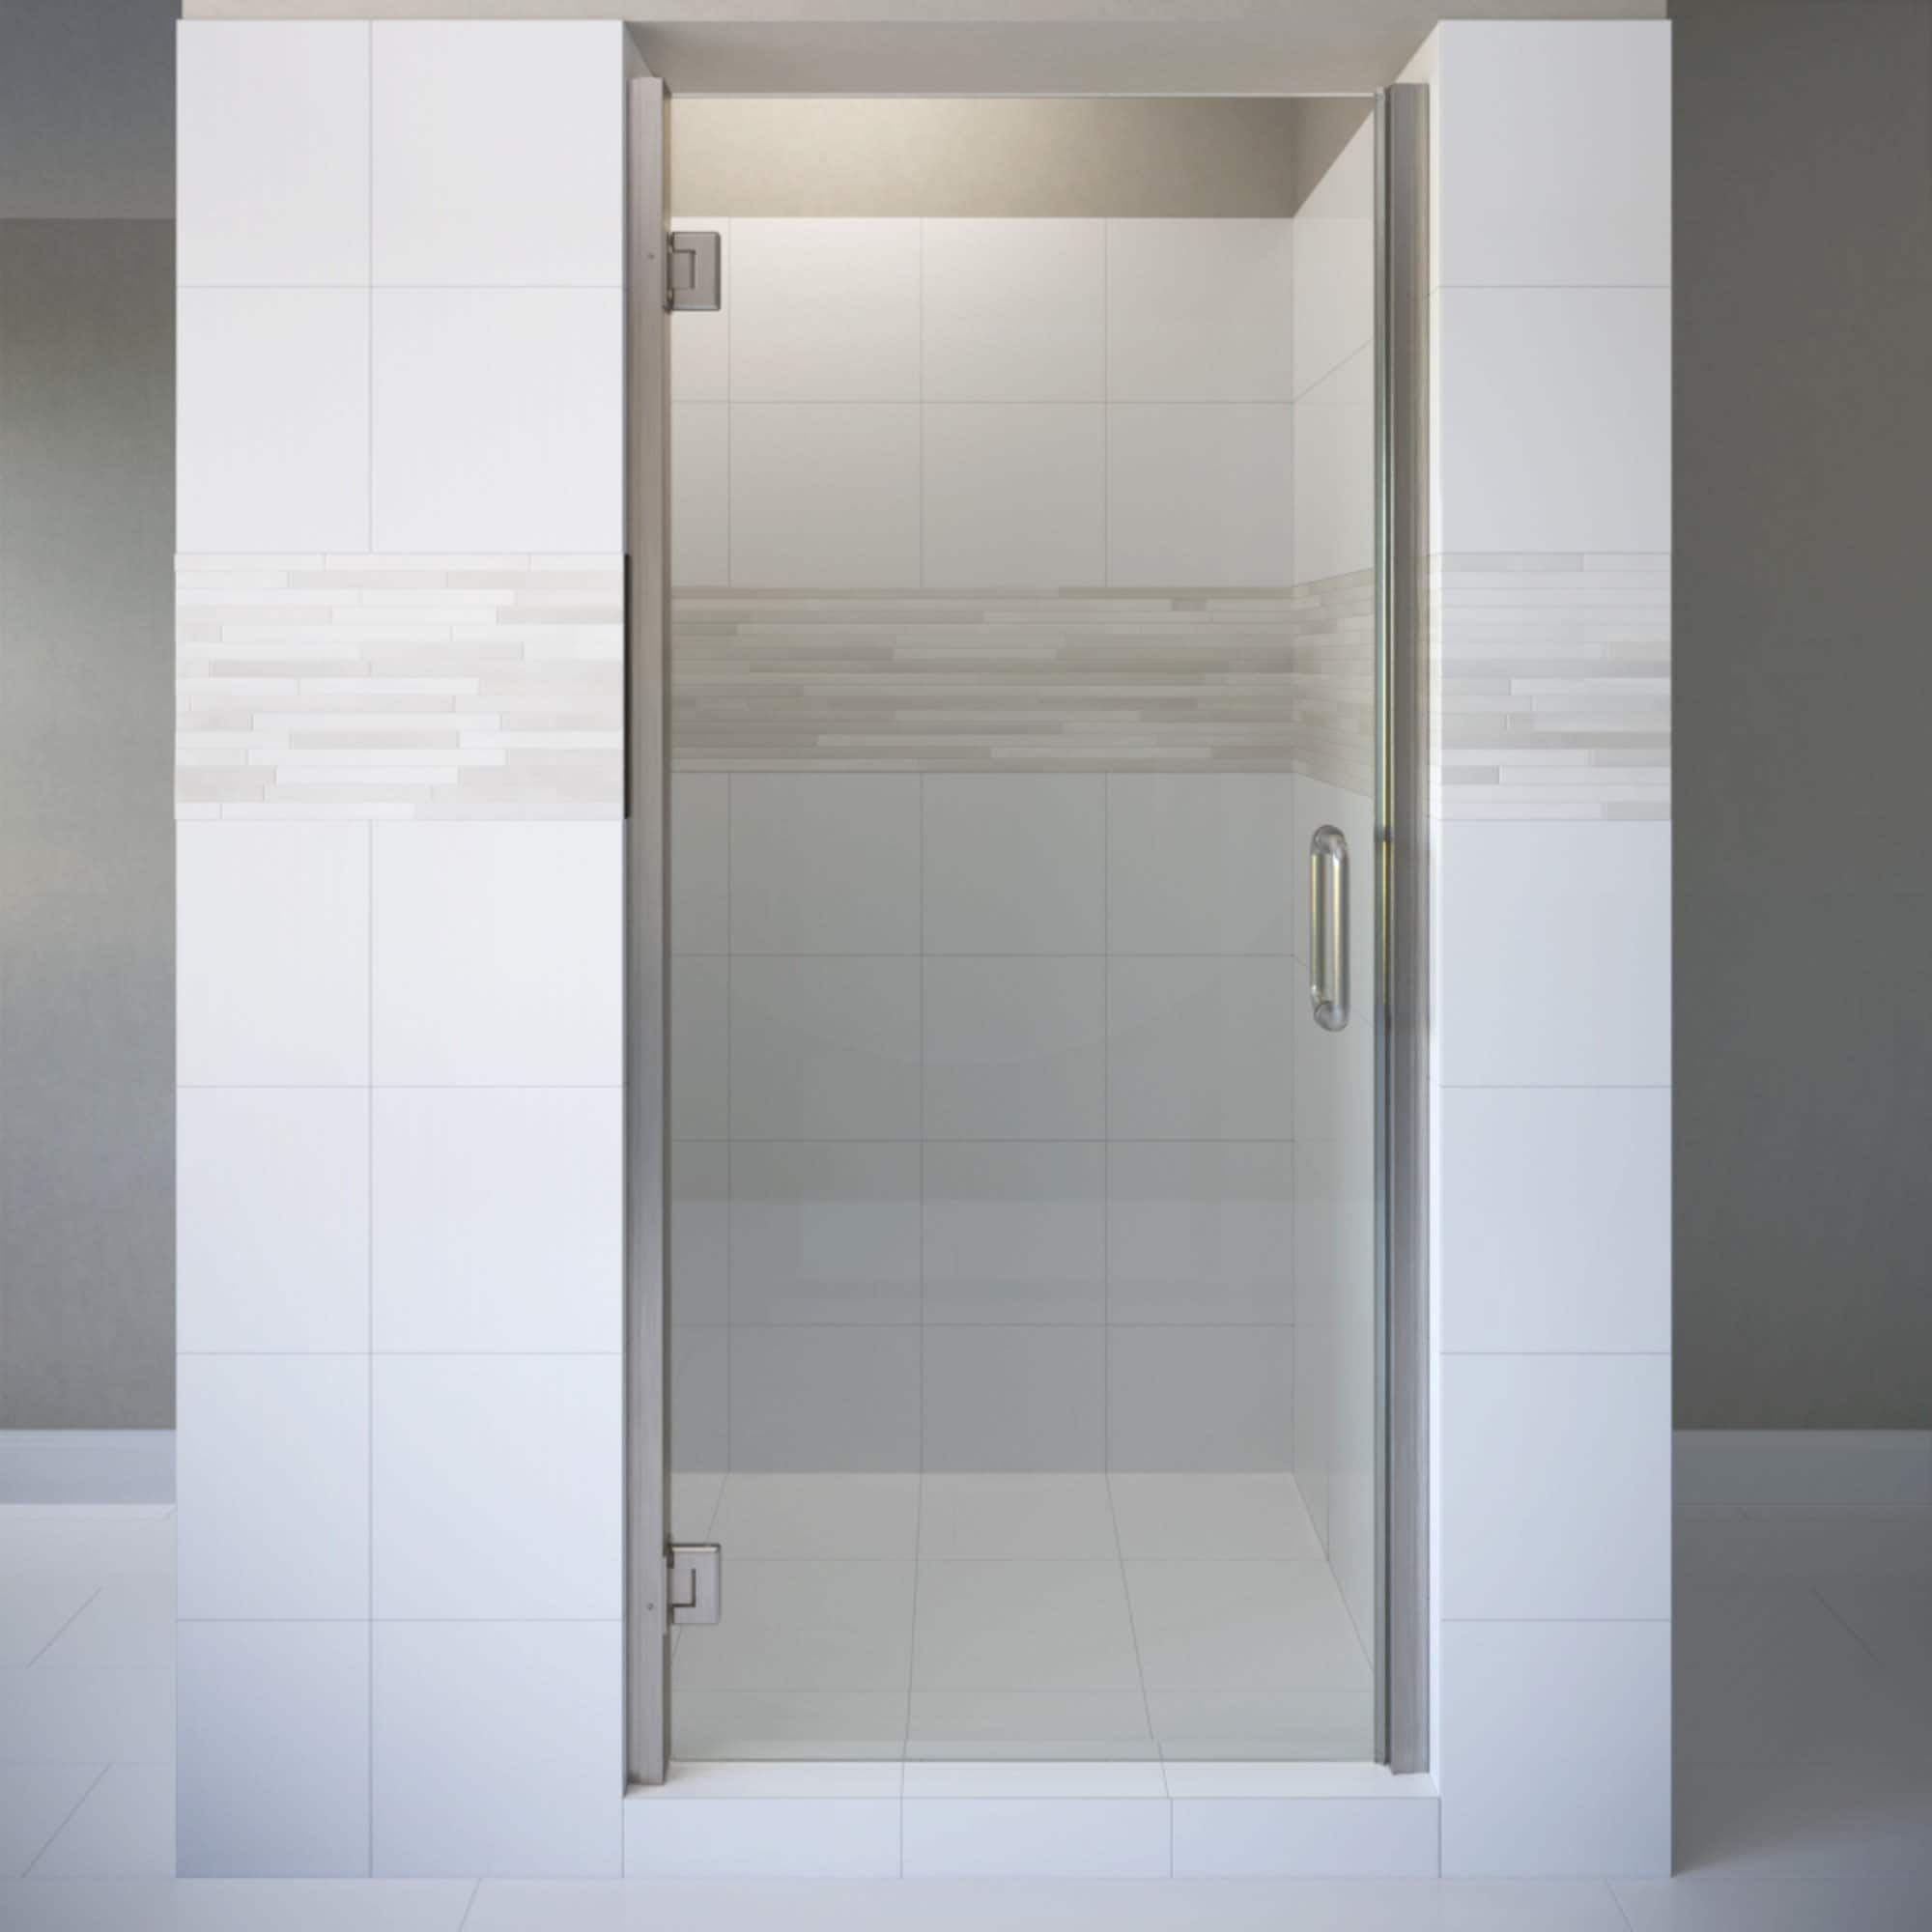 Basco Copa00a3072xp Coppia 72 High X 30 9 16 Wide Hinged Frameless Shower Door With Autoglidexp Clear Glass